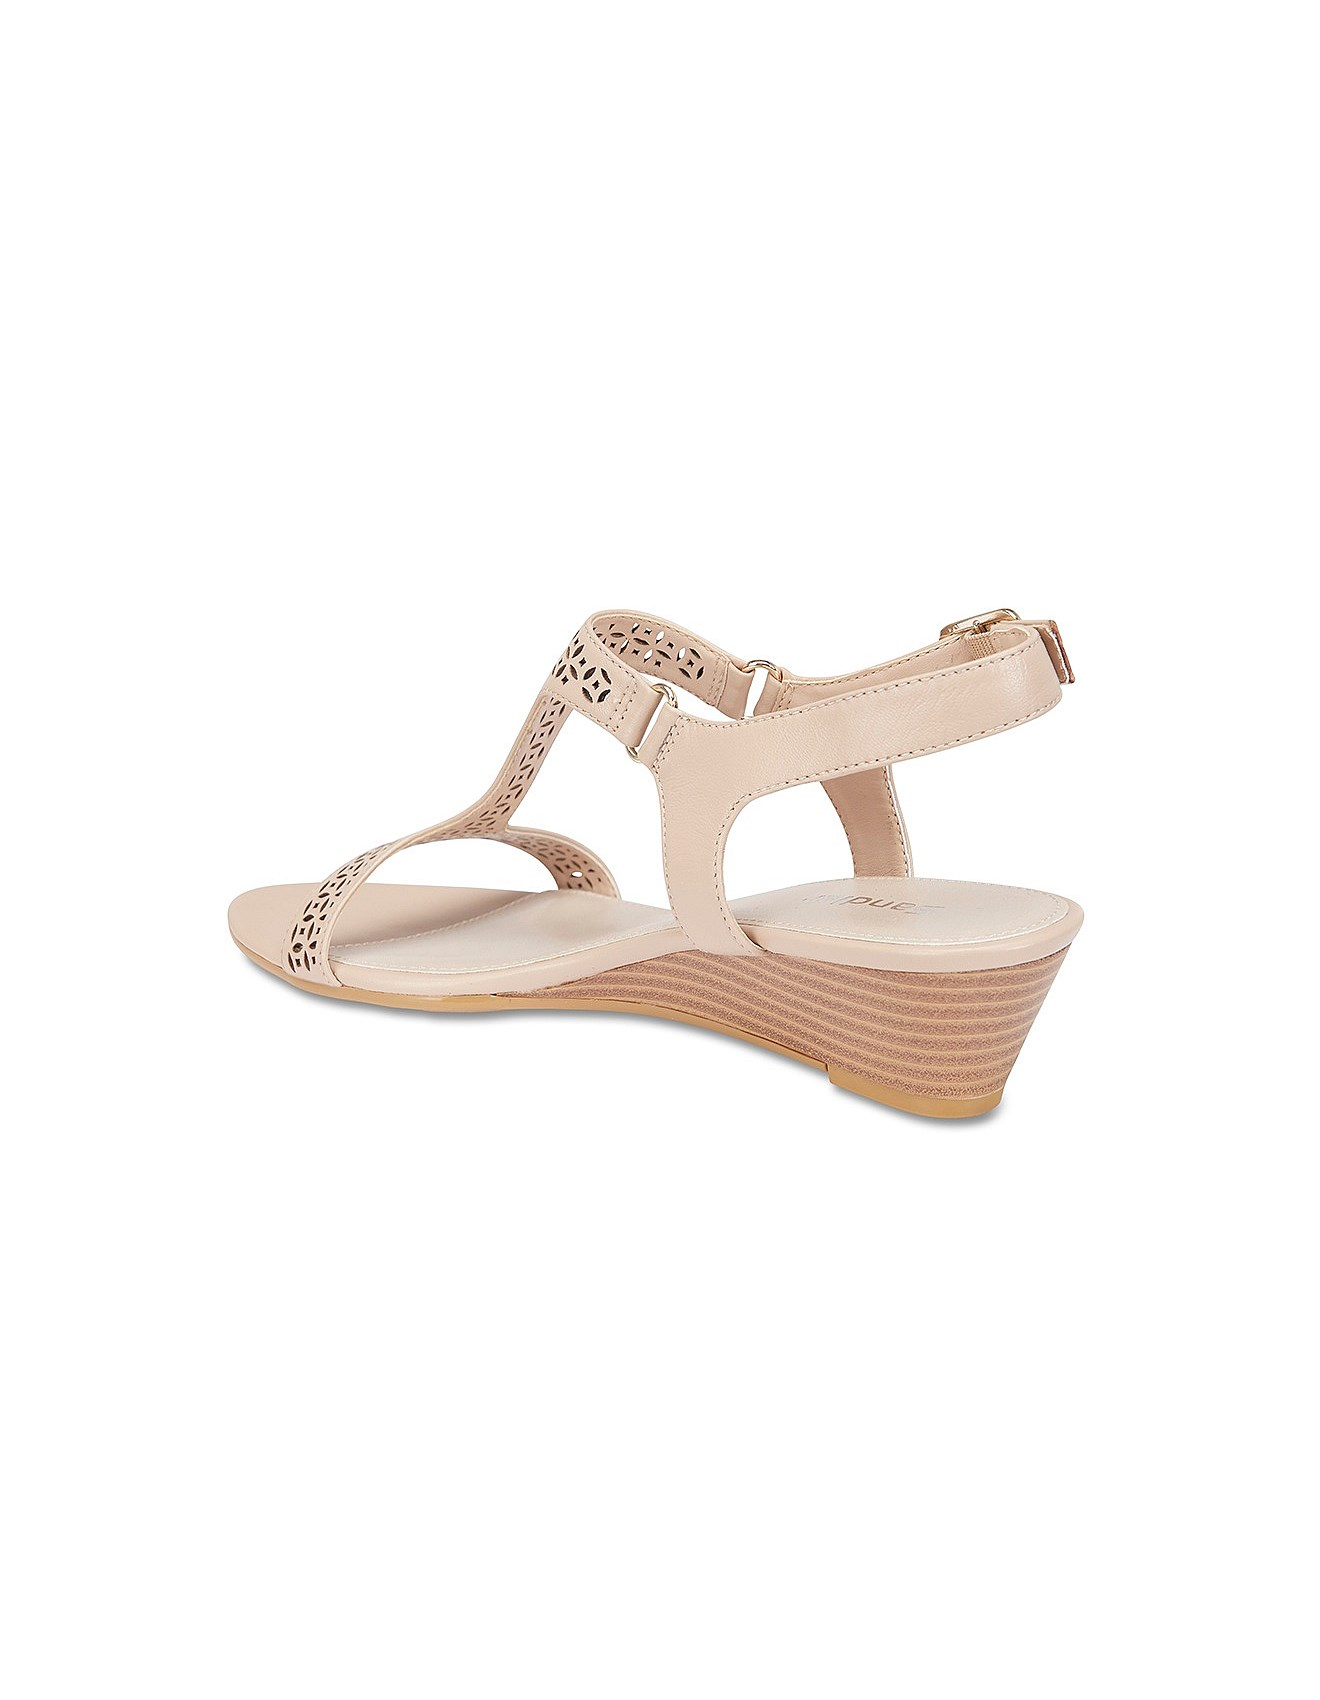 Details about NEW Sandler Quota Nude Leather Sandals Women Shoes